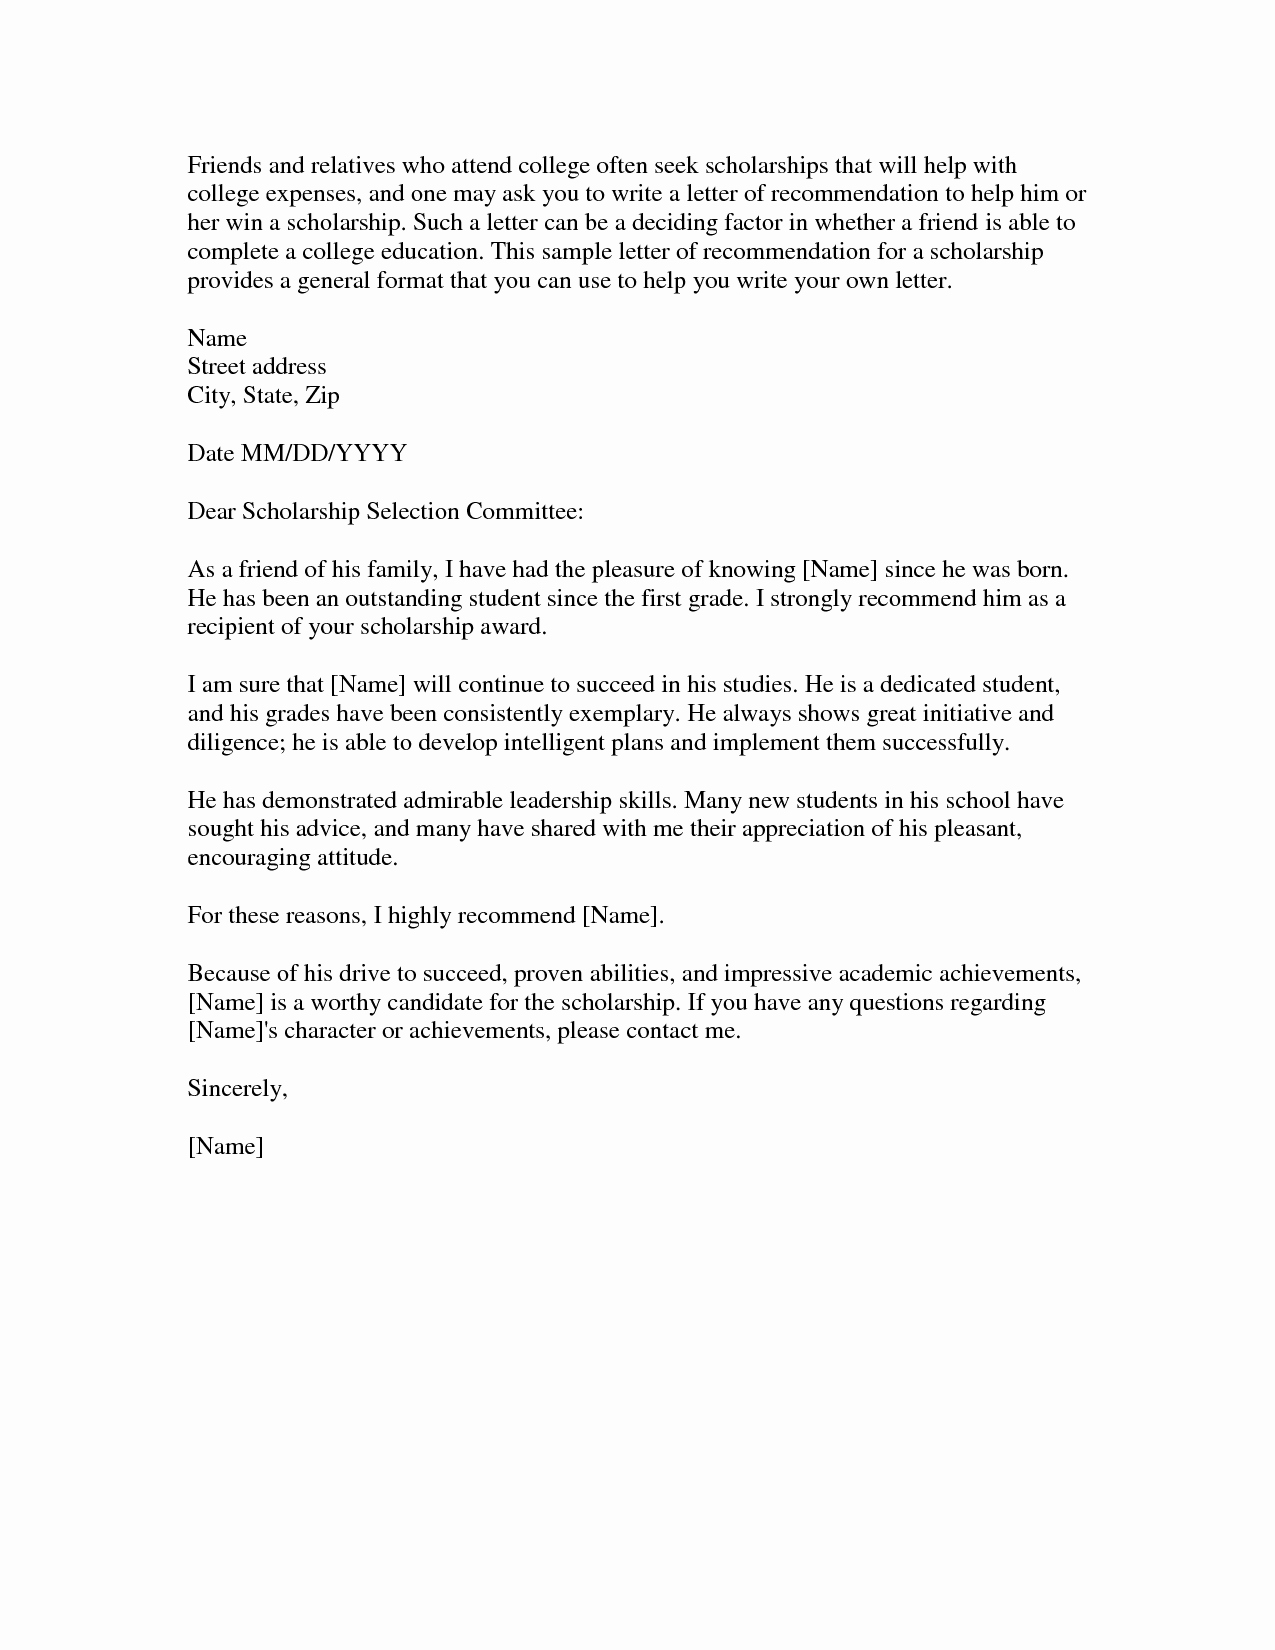 Scholarship Recommendation Letter Samples Best Of Download Scholarship Re Mendation Letter Sample Word